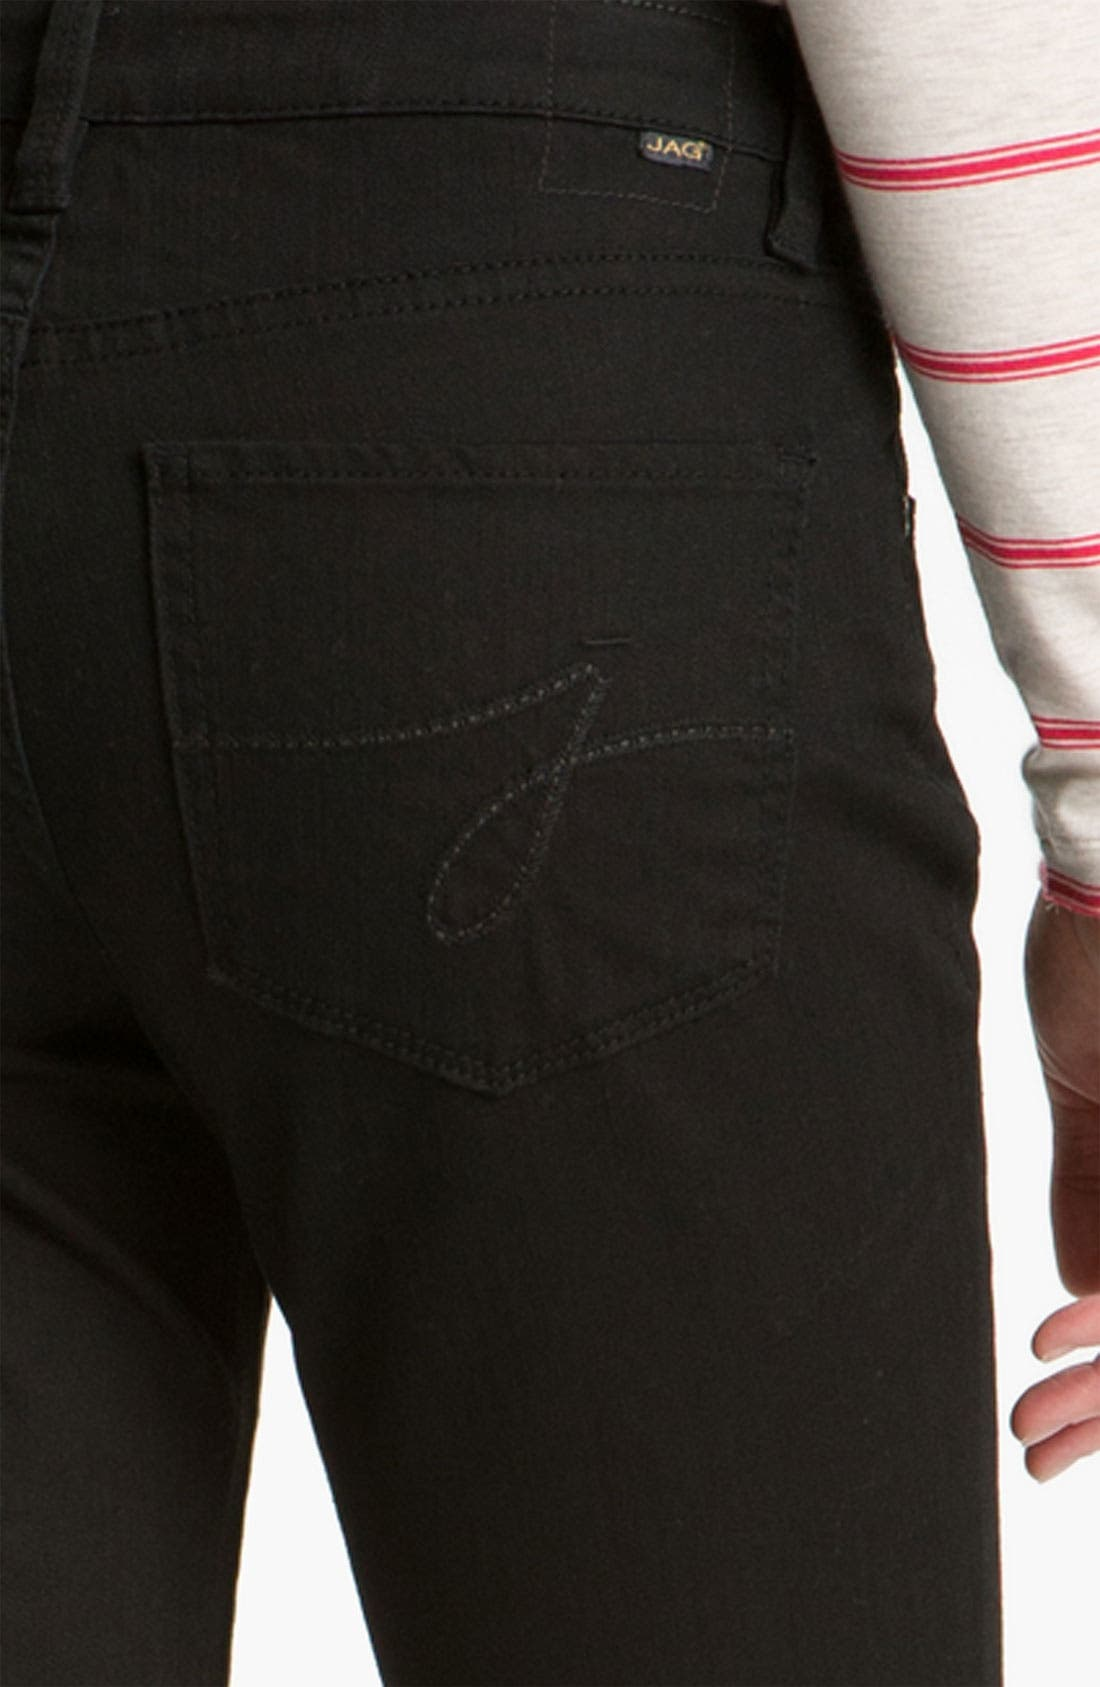 Alternate Image 3  - Jag Jeans 'Lucy' Bootcut Stretch Jeans (Black Wash) (Online Exclusive)